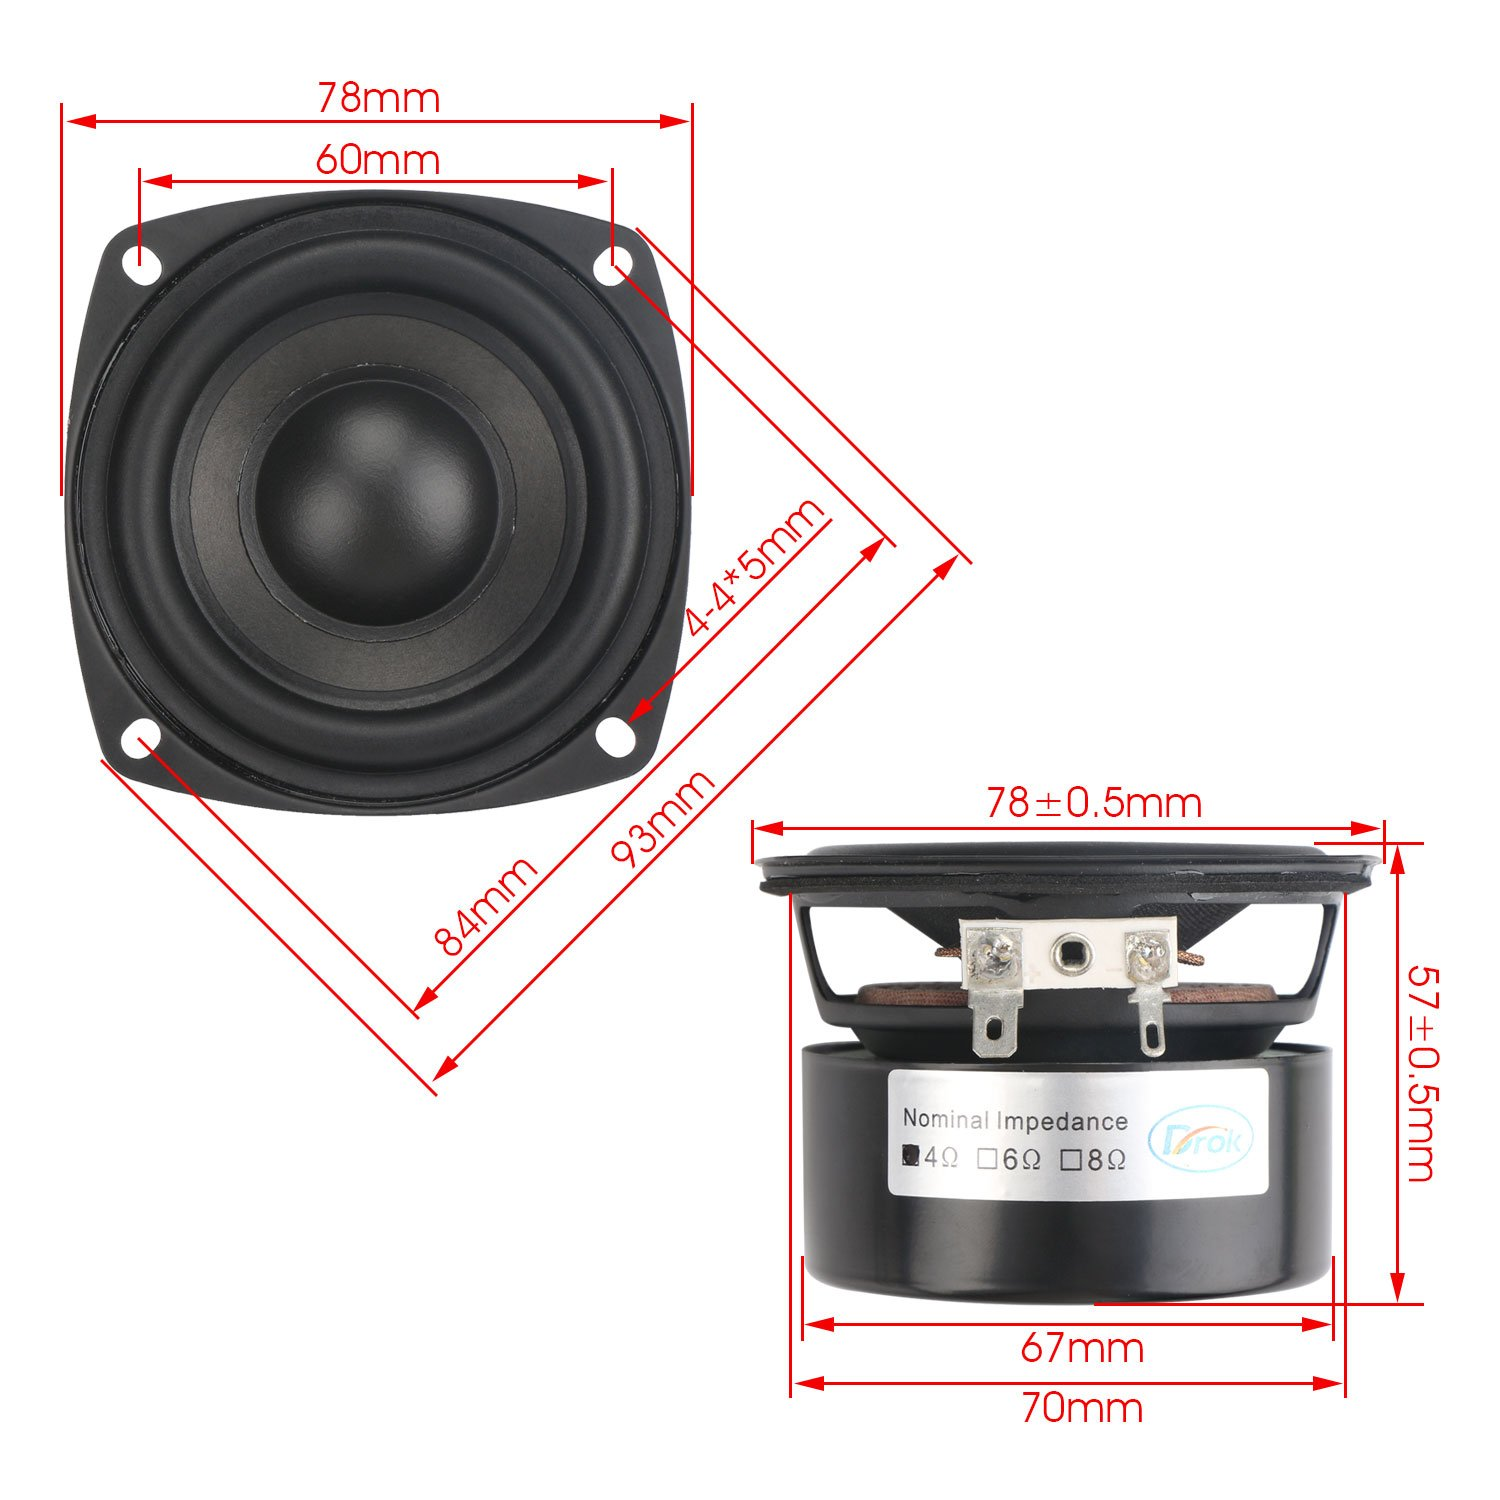 Drok 25w 3 Inch Square Shape Woofer Speaker Stereo Dual 4 Ohm Subwoofer Wiring Subs Also 2 Sub To A Loudspeaker Computer Compact Speakers Diy Home Car Audio Hifi Bass 90hz 5khz